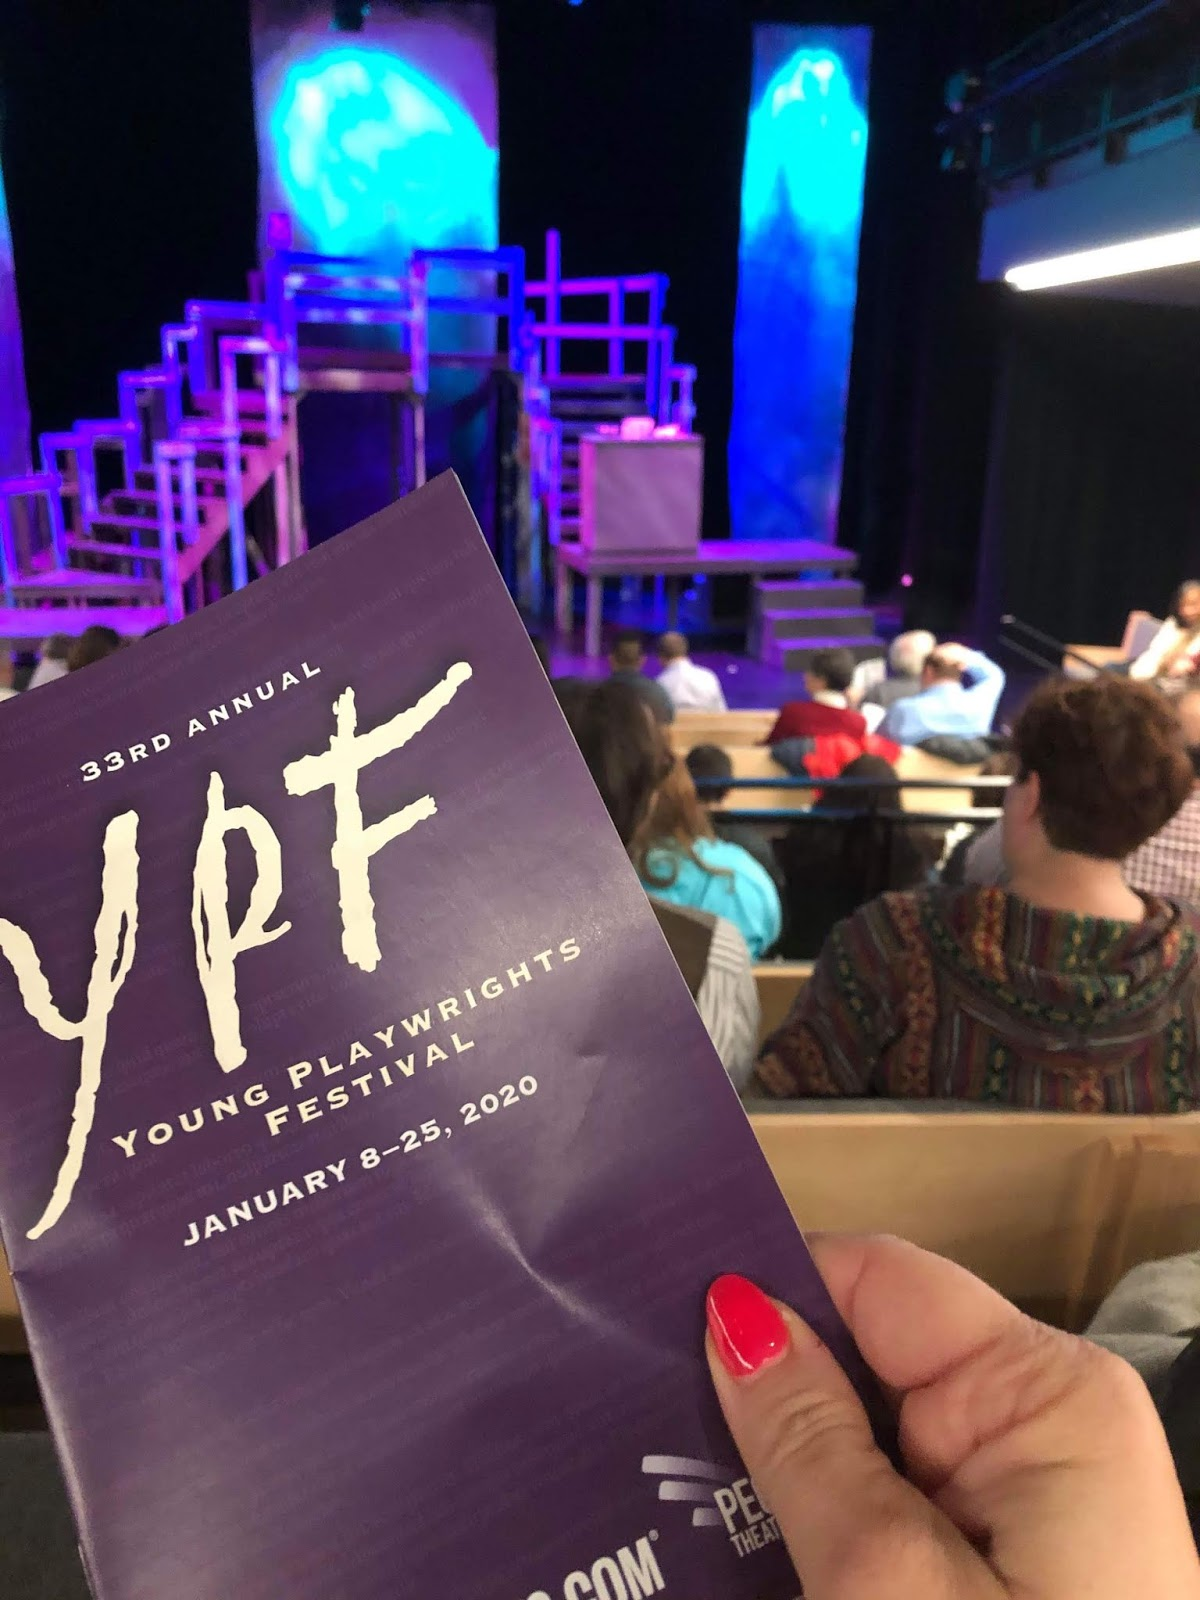 White Christmas 2020 Act 1 Ypt ChiIL Mama : REVIEW: 33rd YOUNG PLAYWRIGHTS FESTIVAL VIA PEGASUS